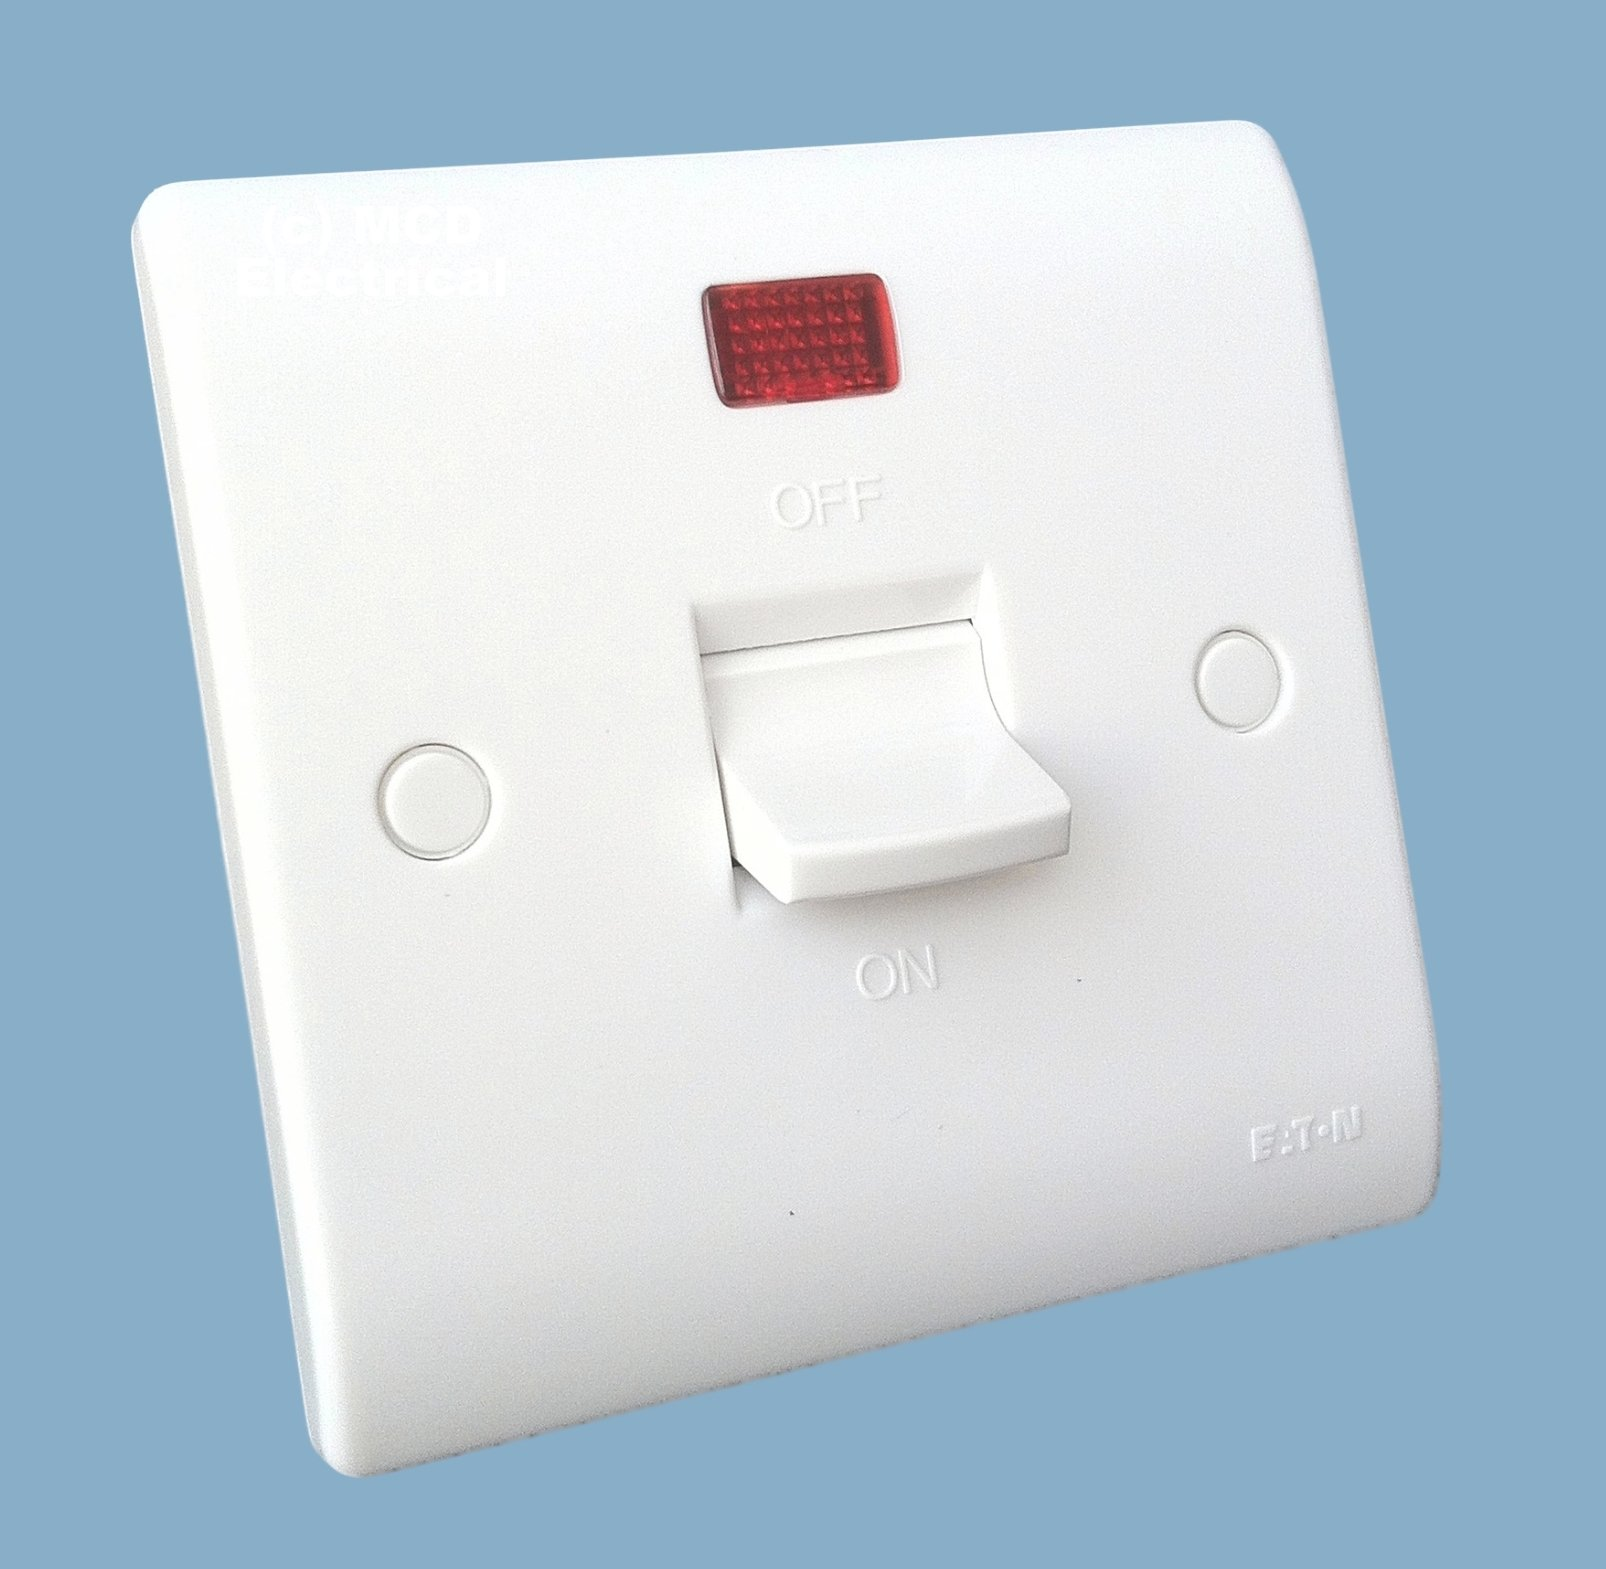 Eaton P422N Premera Moulded 50A Double Pole Switch, White